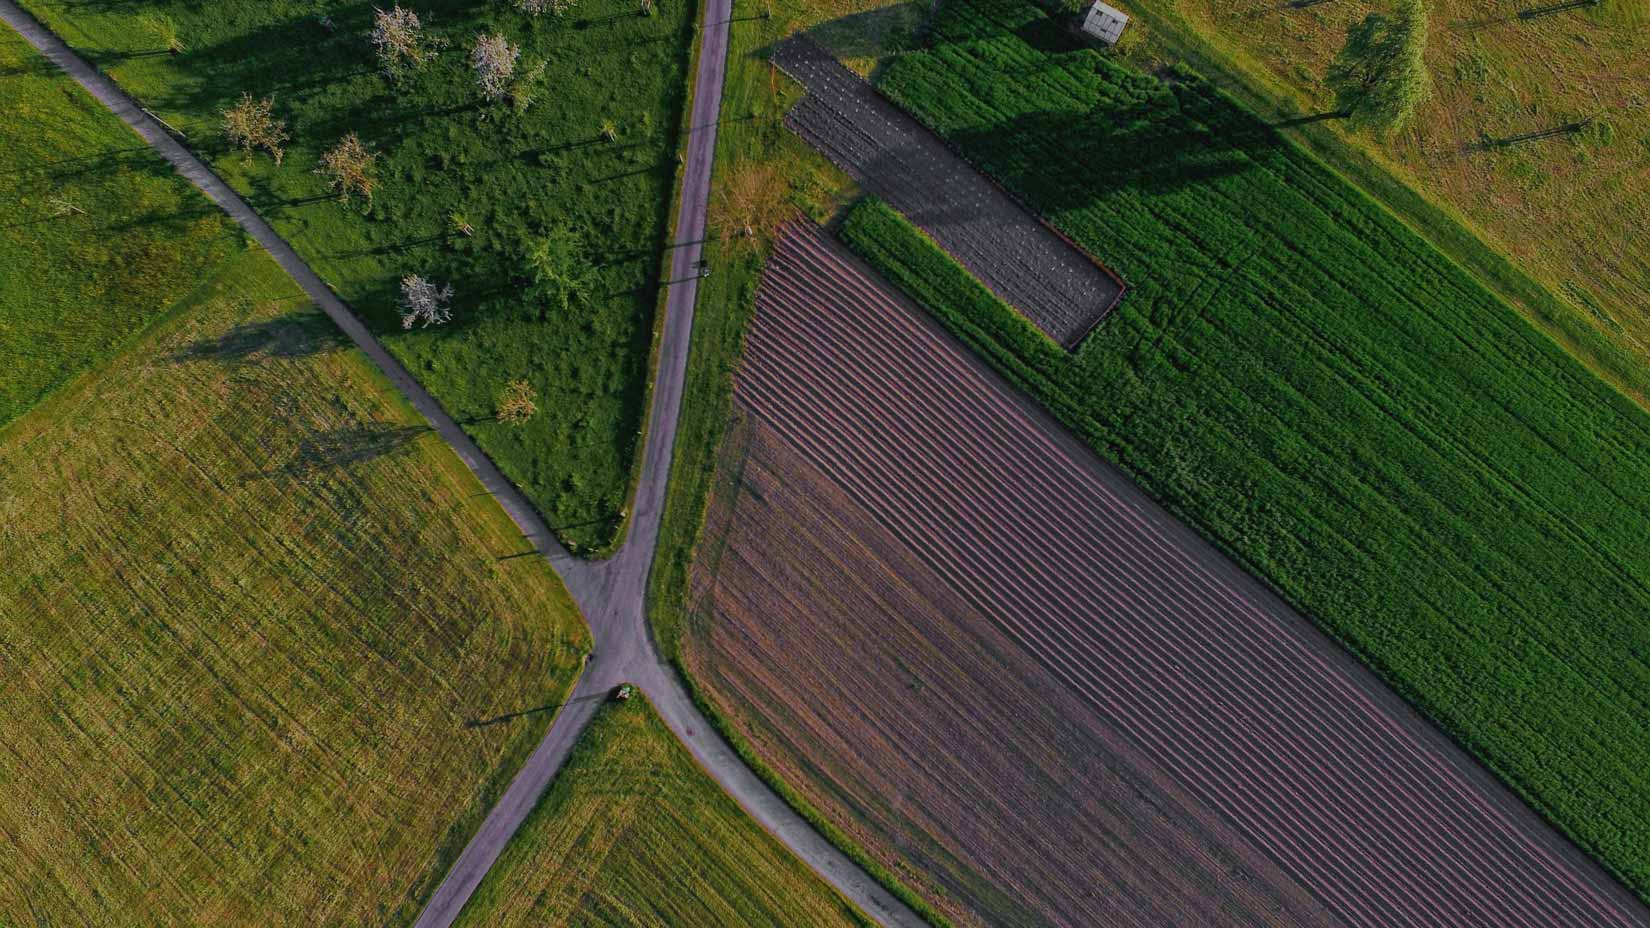 cquest-aerial-view-of-agricultural-field-2-1.jpg